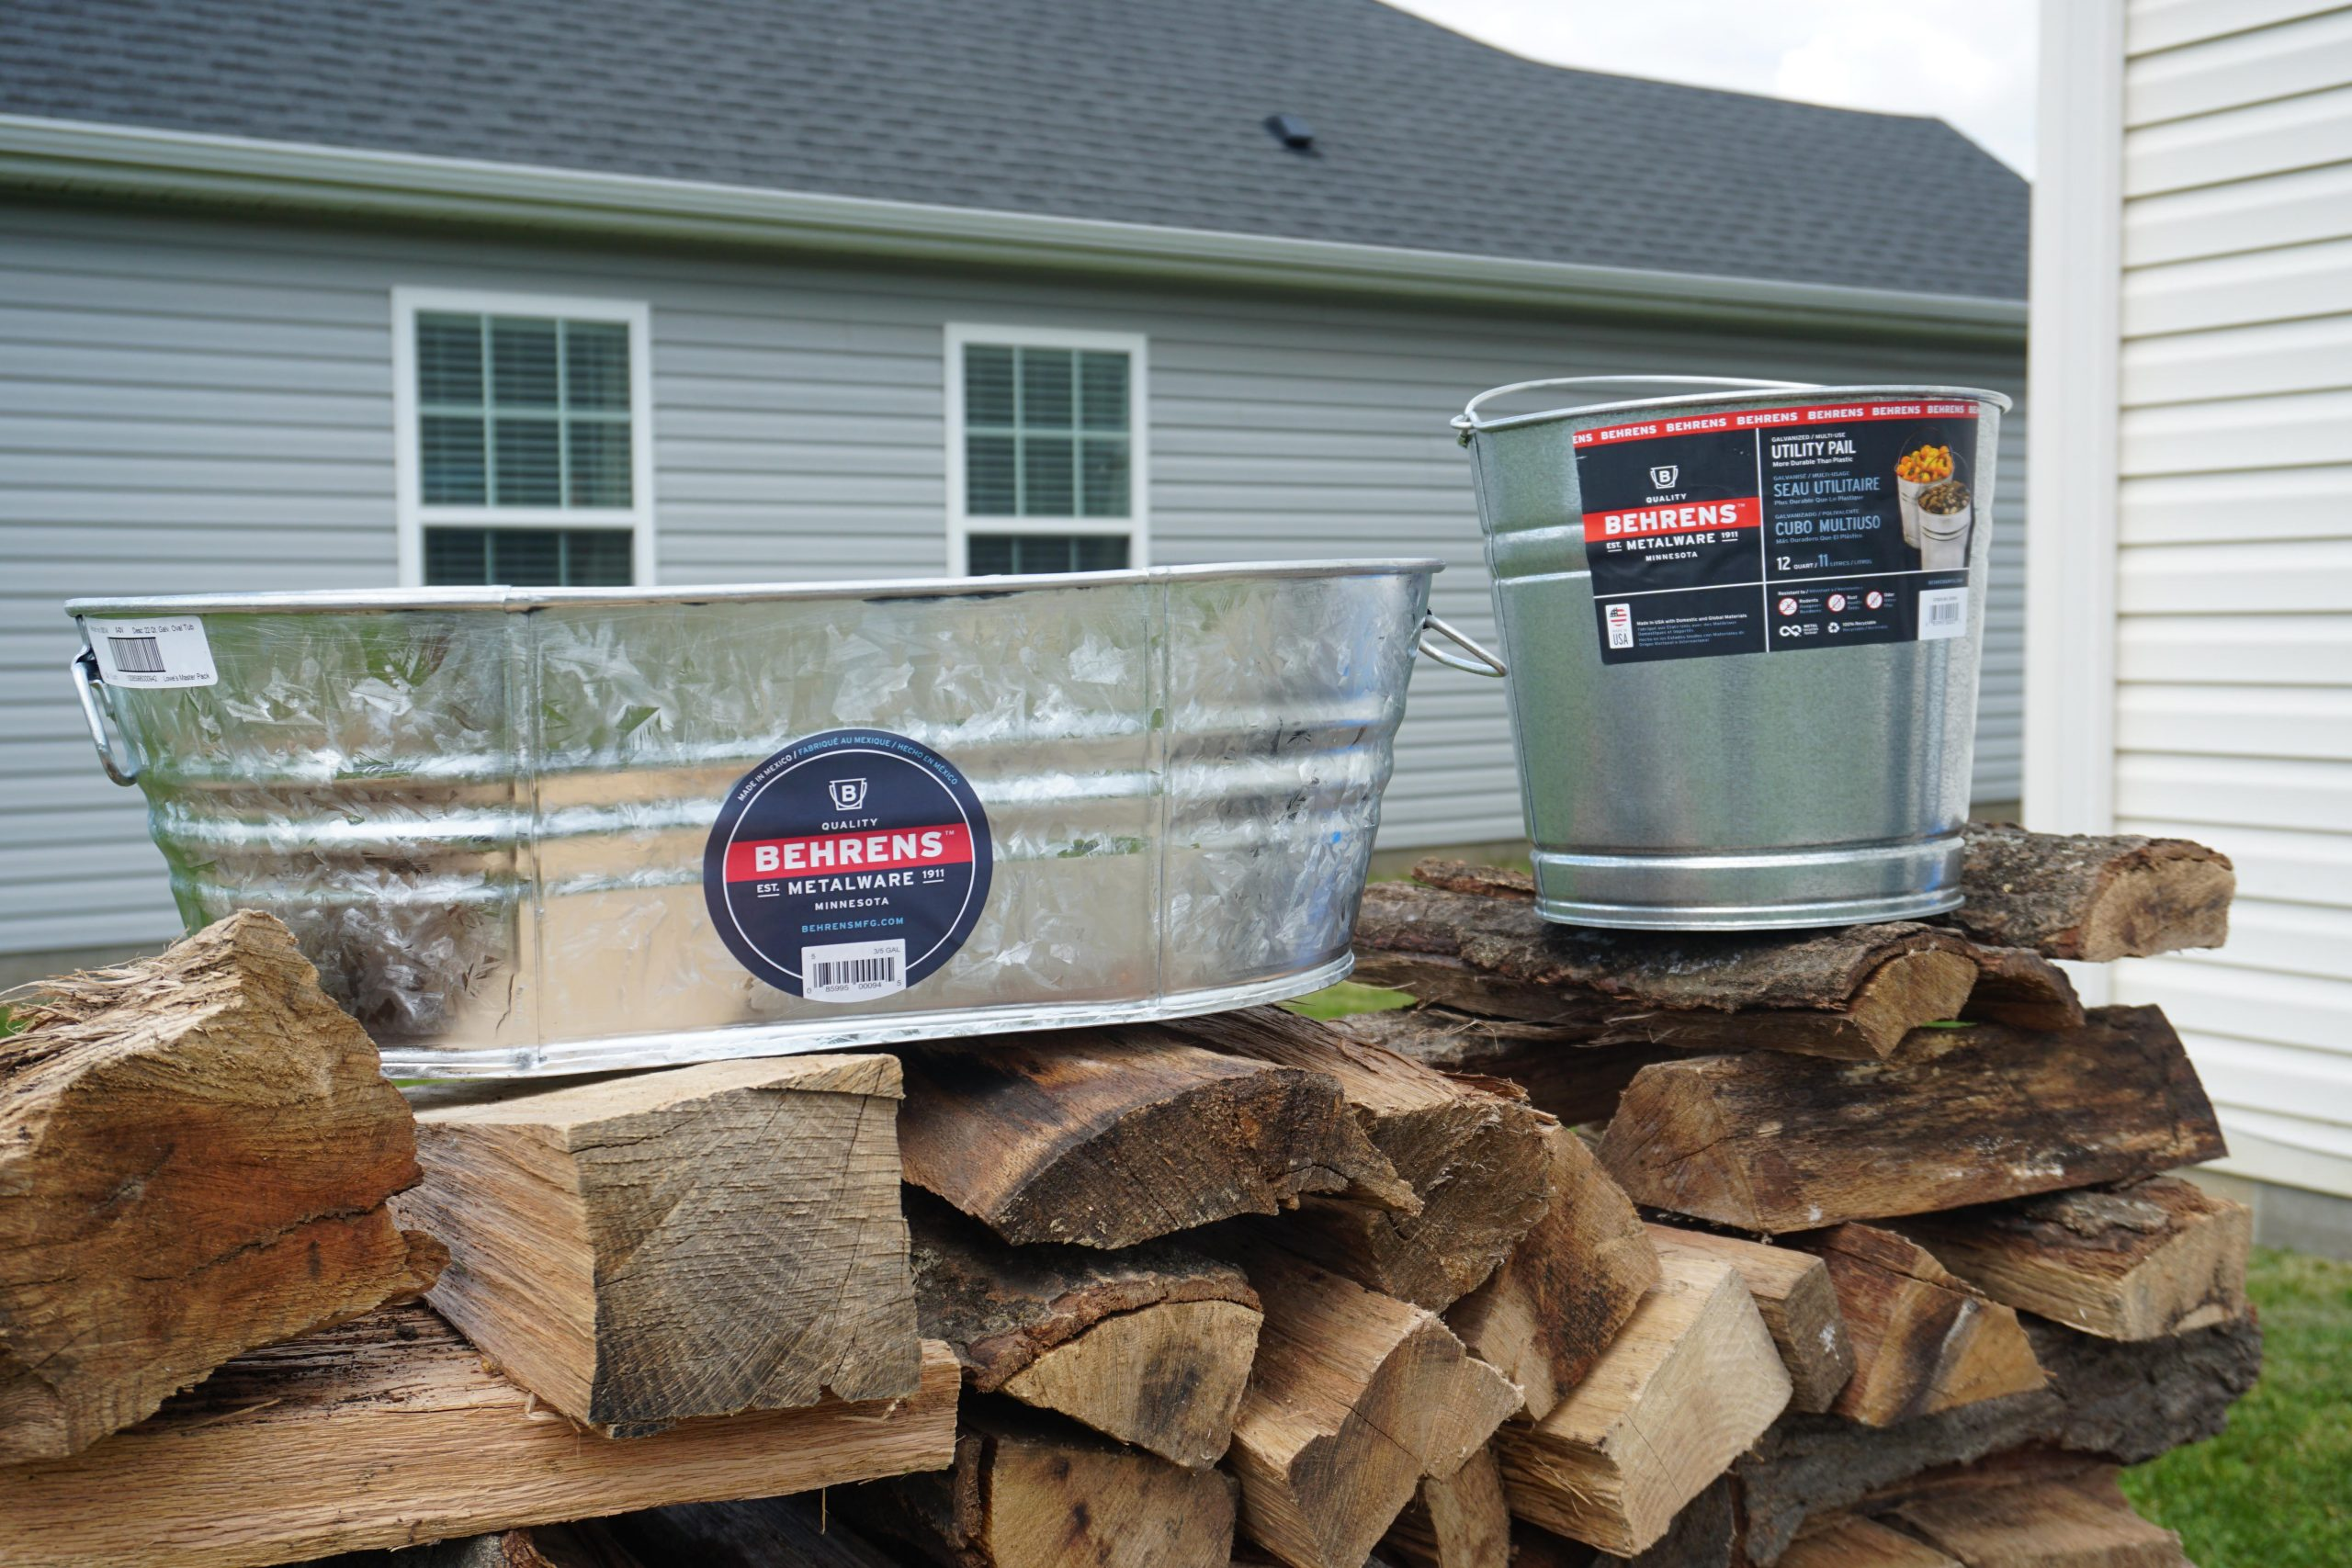 Behren's Metal Buckets sitting on top of firewood